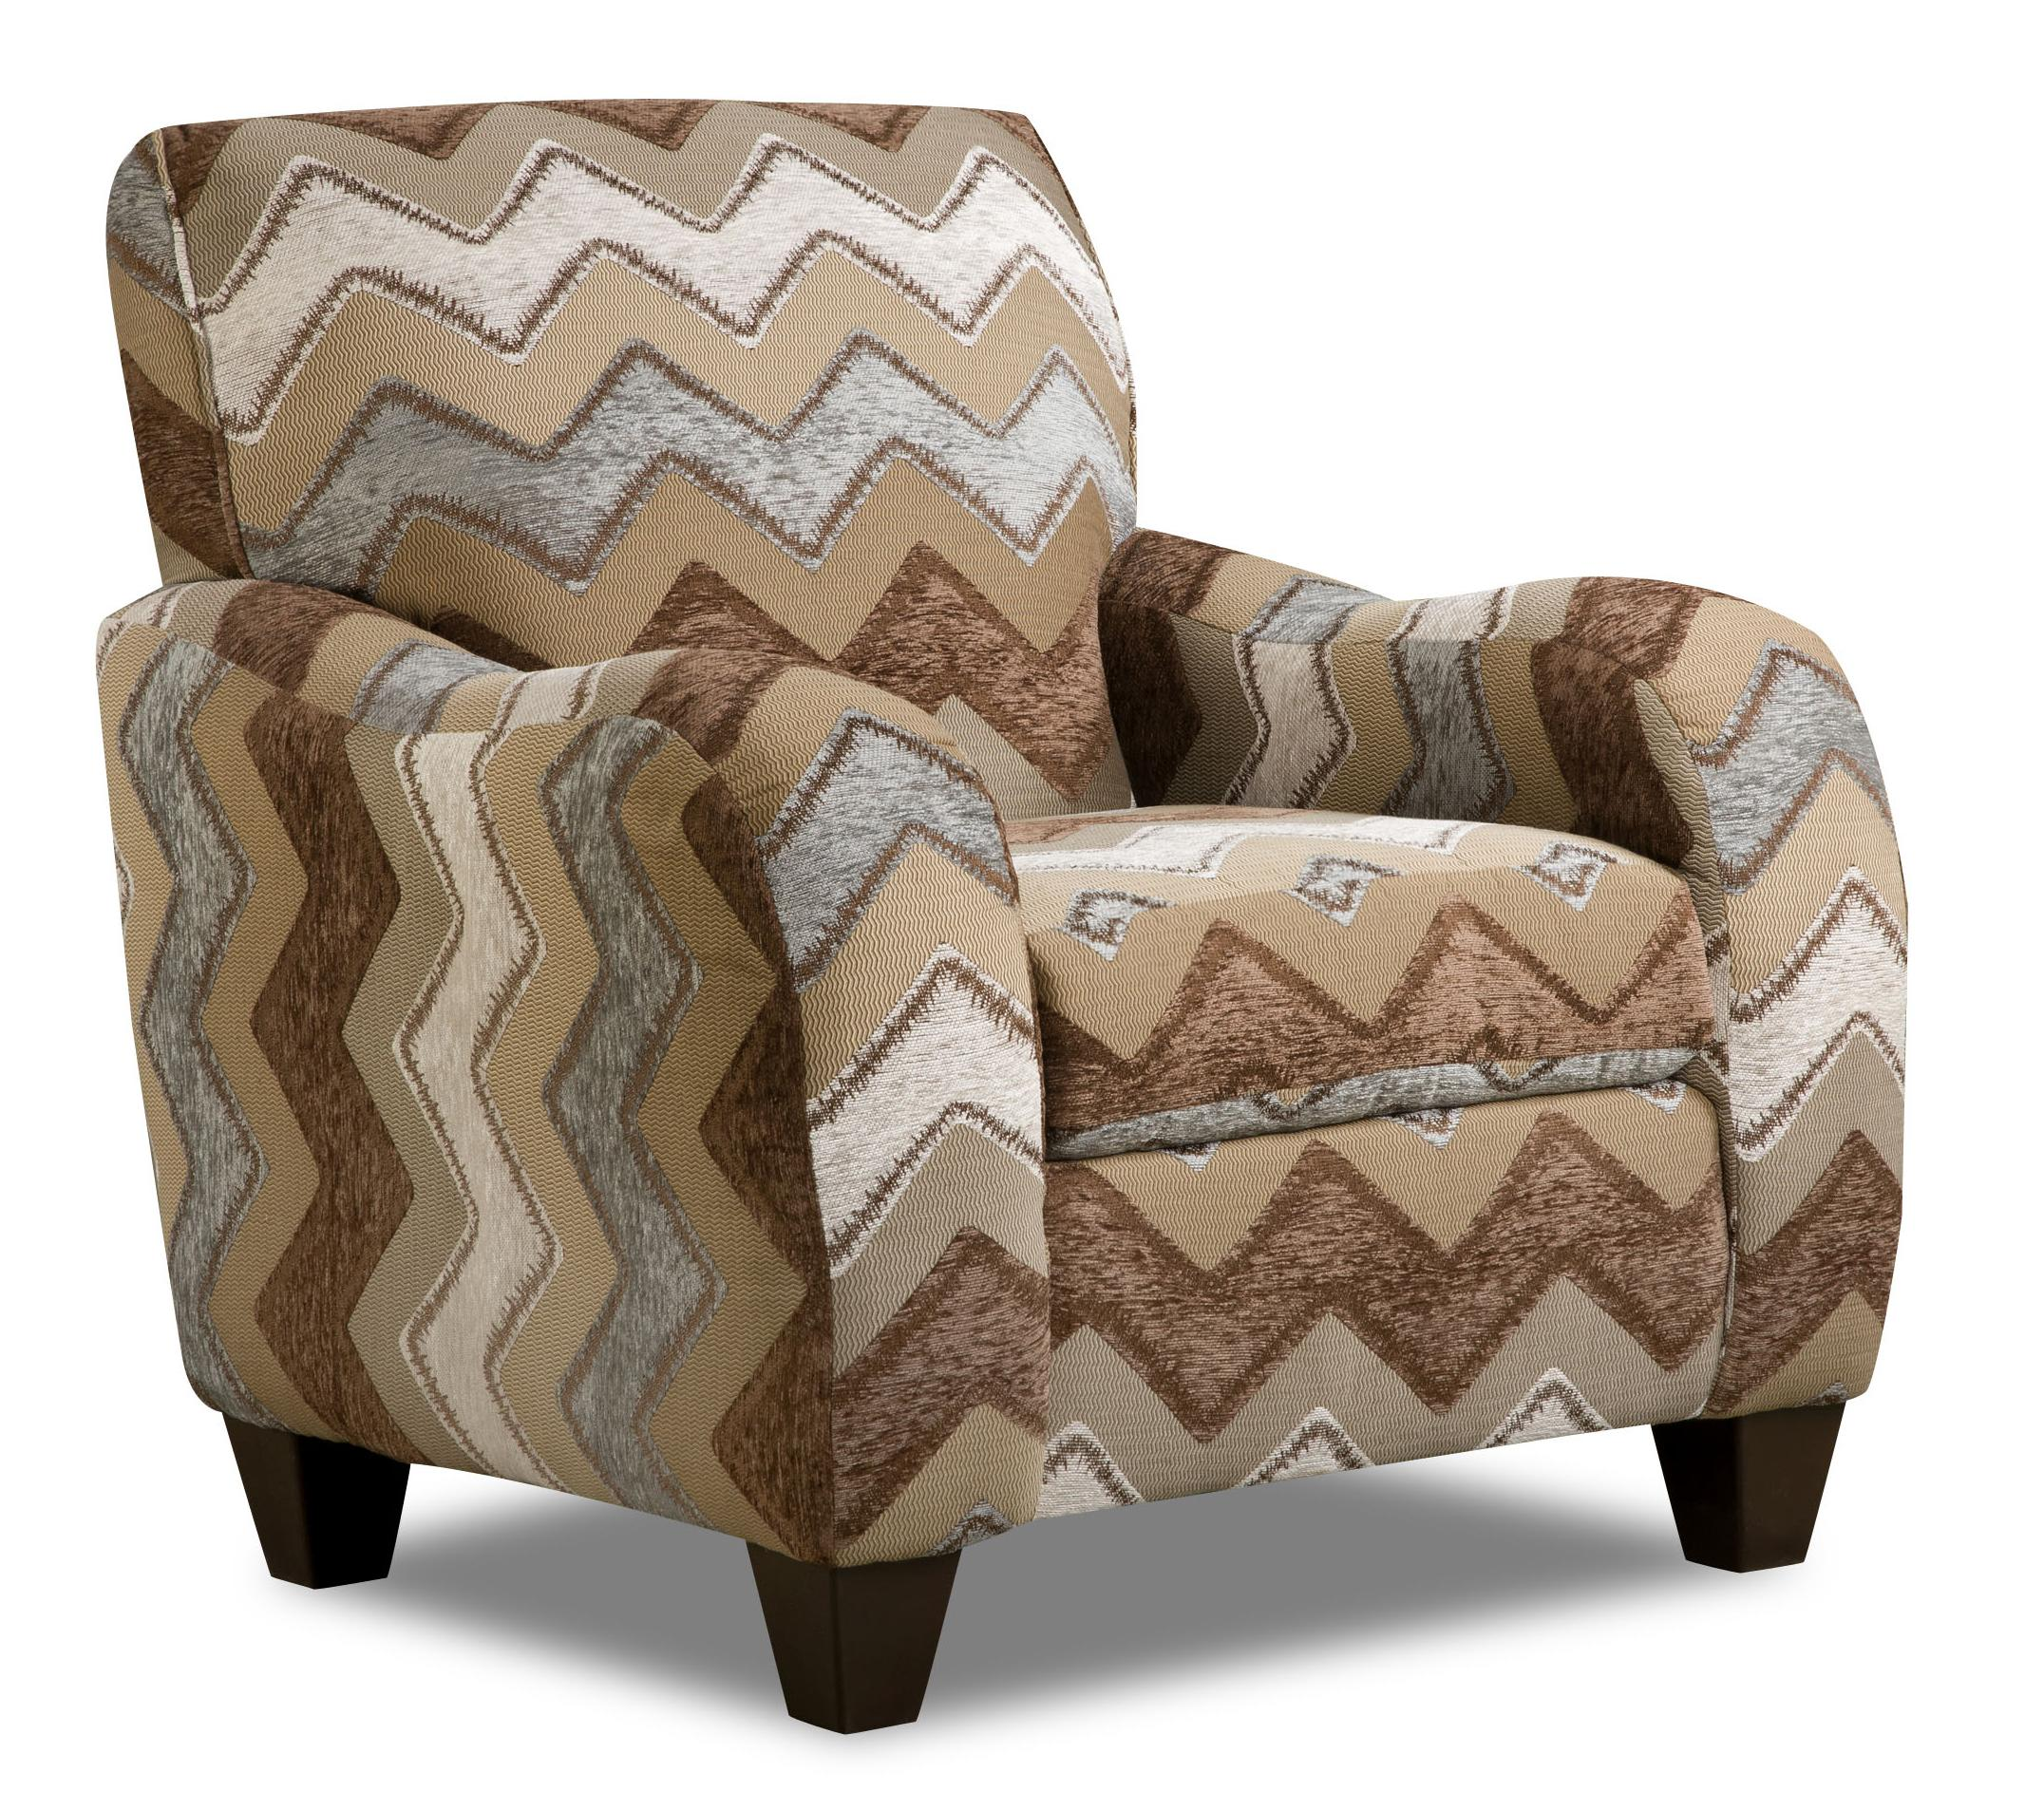 27A0 Specialty Chair by Corinthian at Story & Lee Furniture